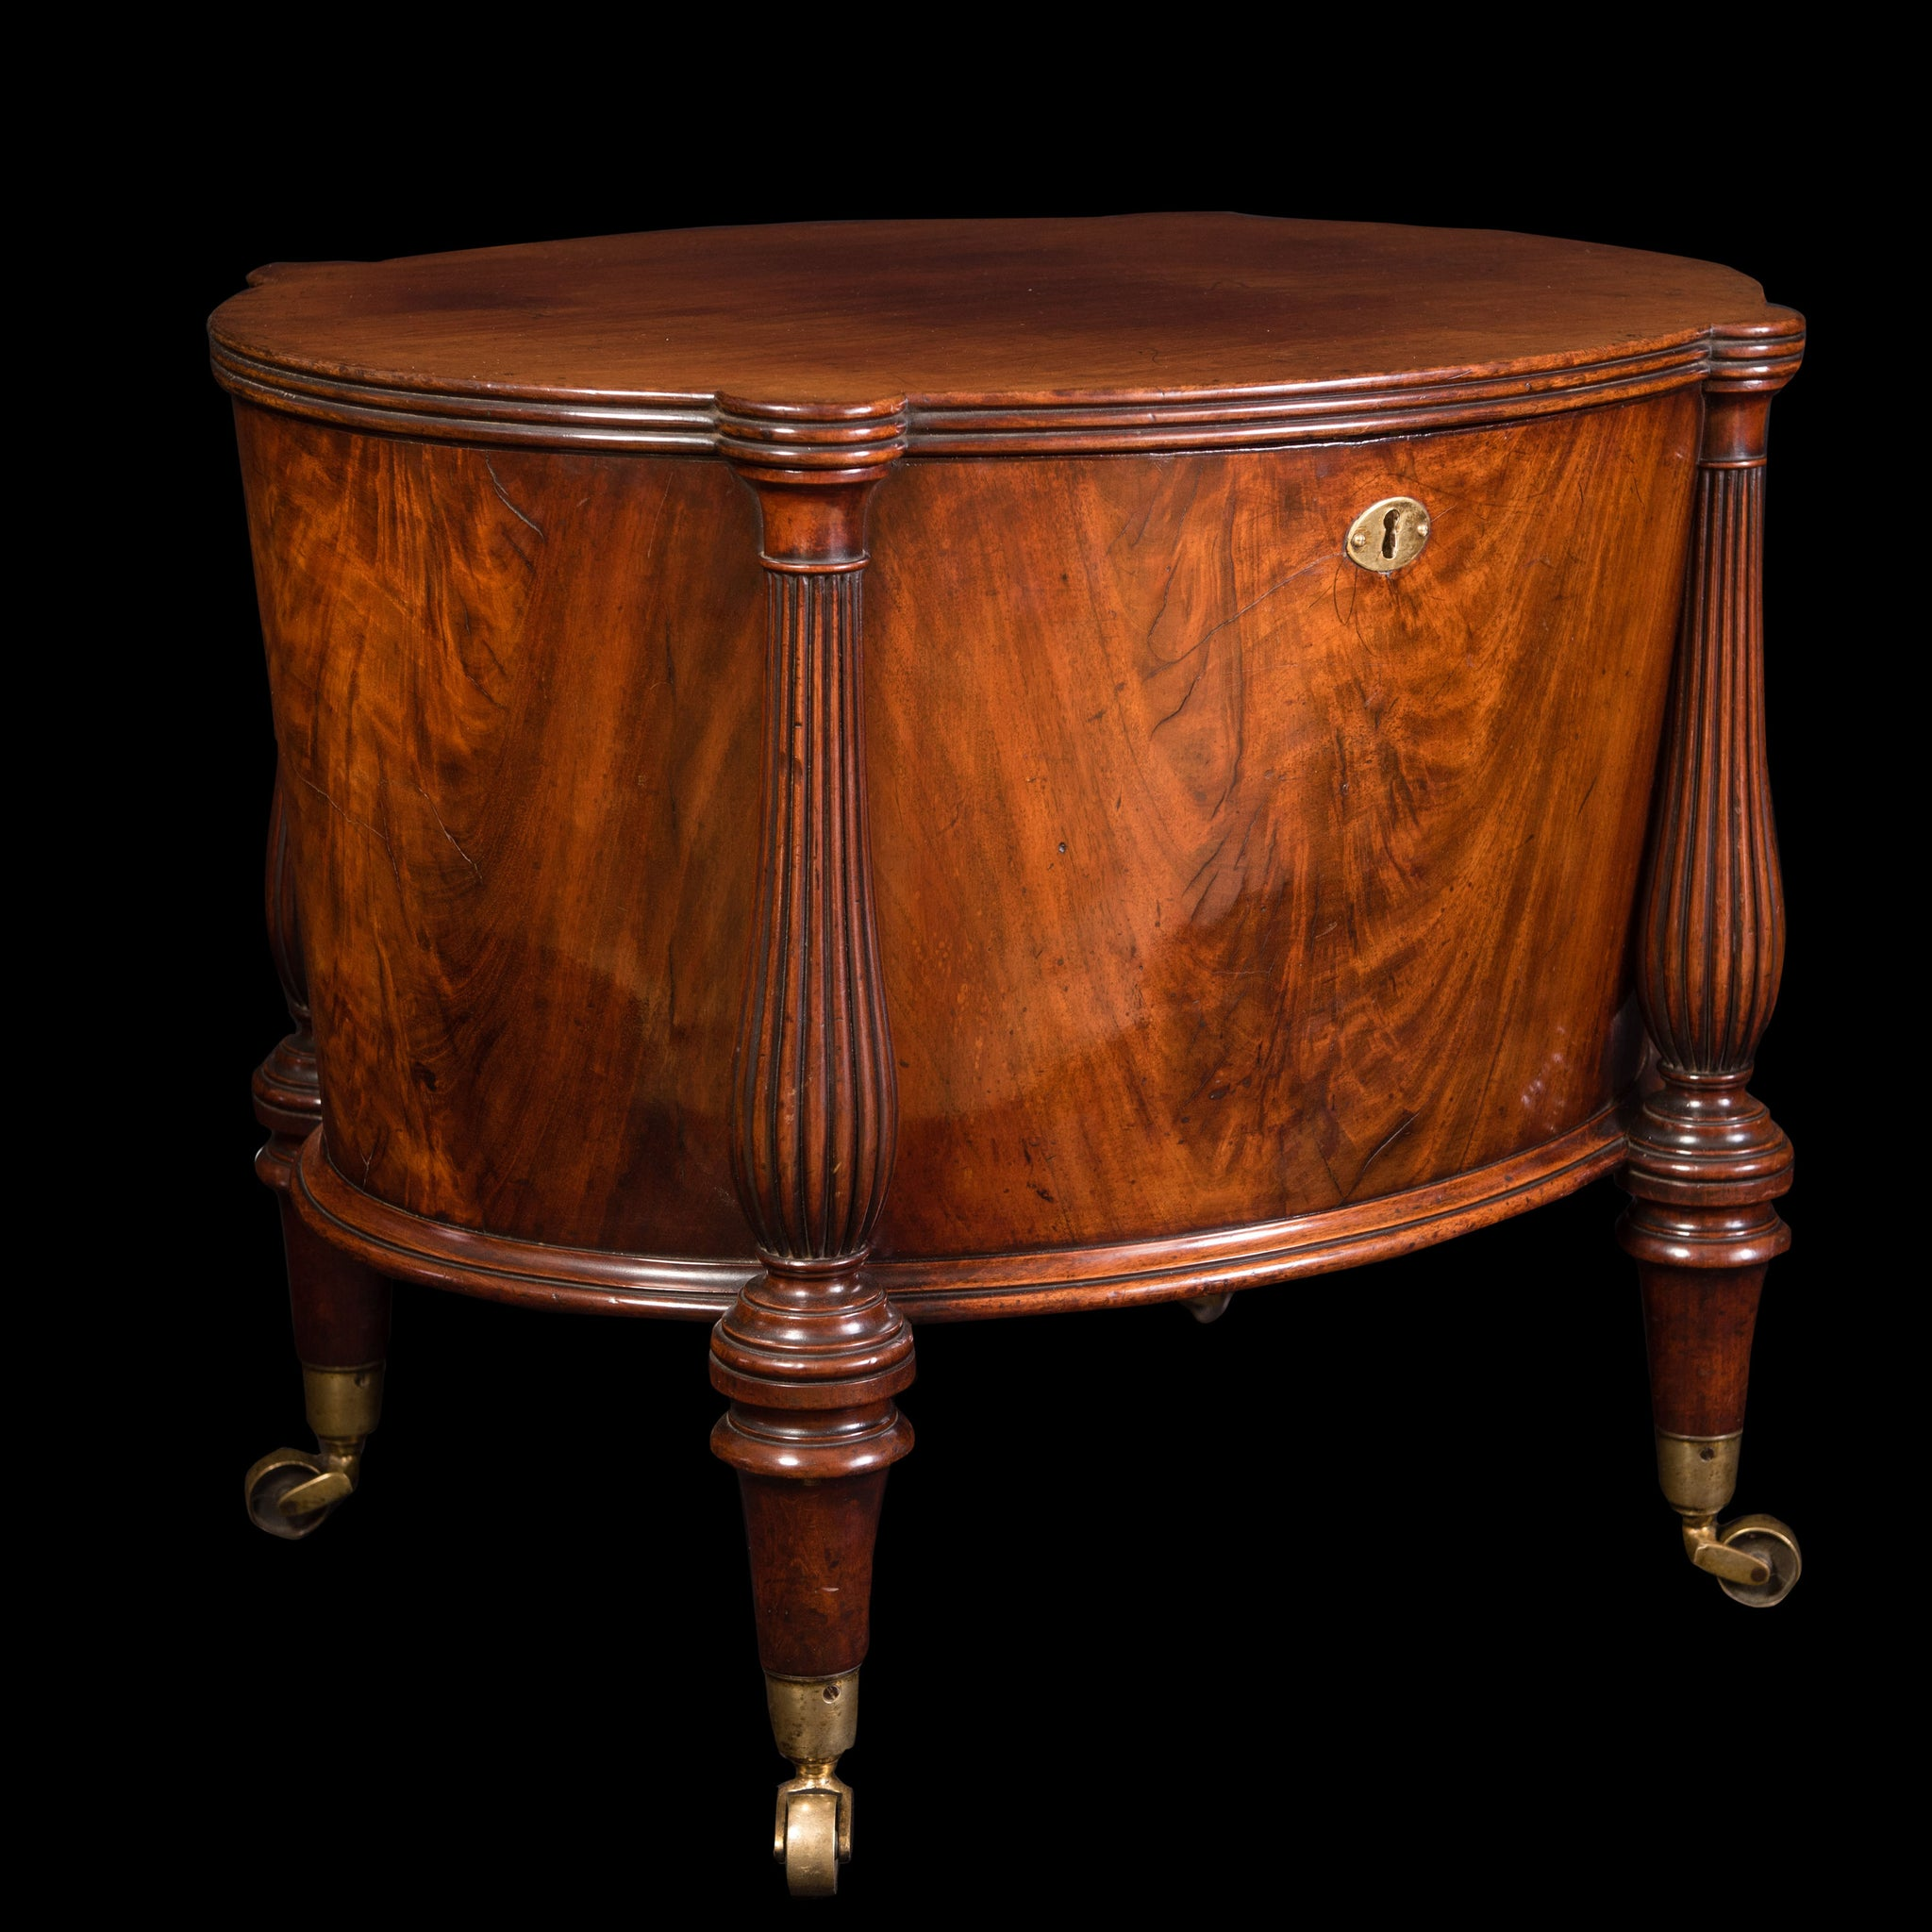 George III Oval Cellarette